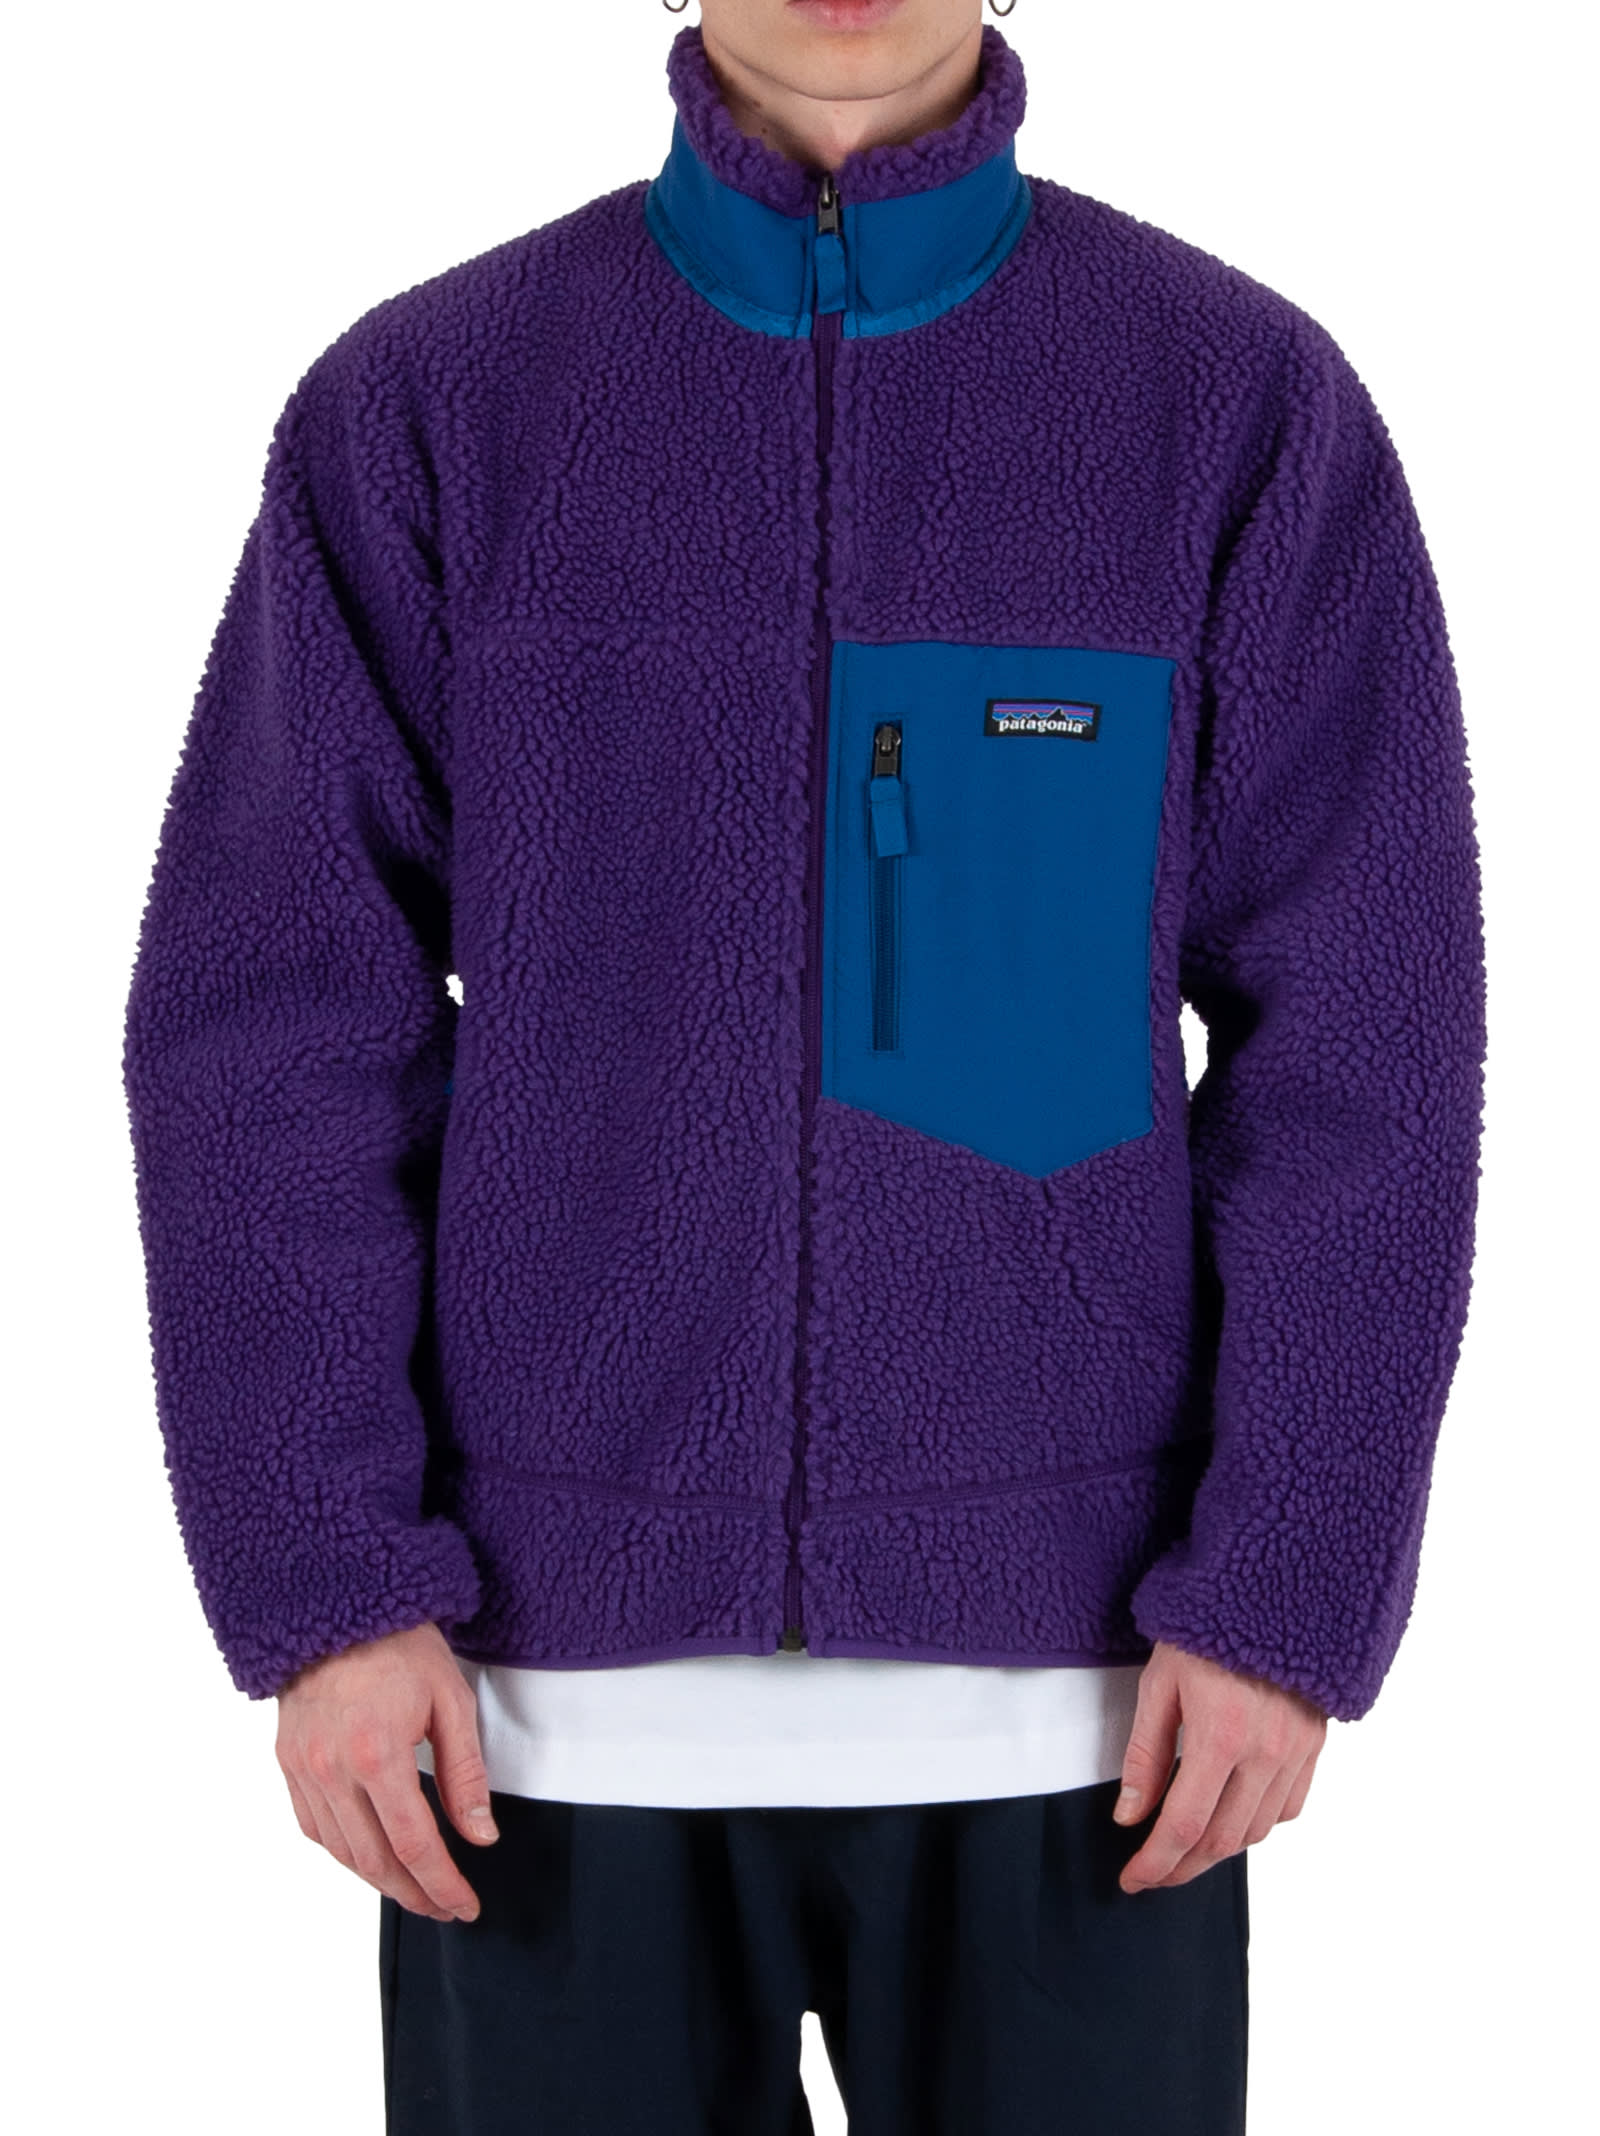 Zipper closure; - Chest Pocket with zipper closure; - Side pockets with zipper closure; - Logoed insert applied to chest. - Composition: 100% Polyester (50% Recycled) - Color: Purple